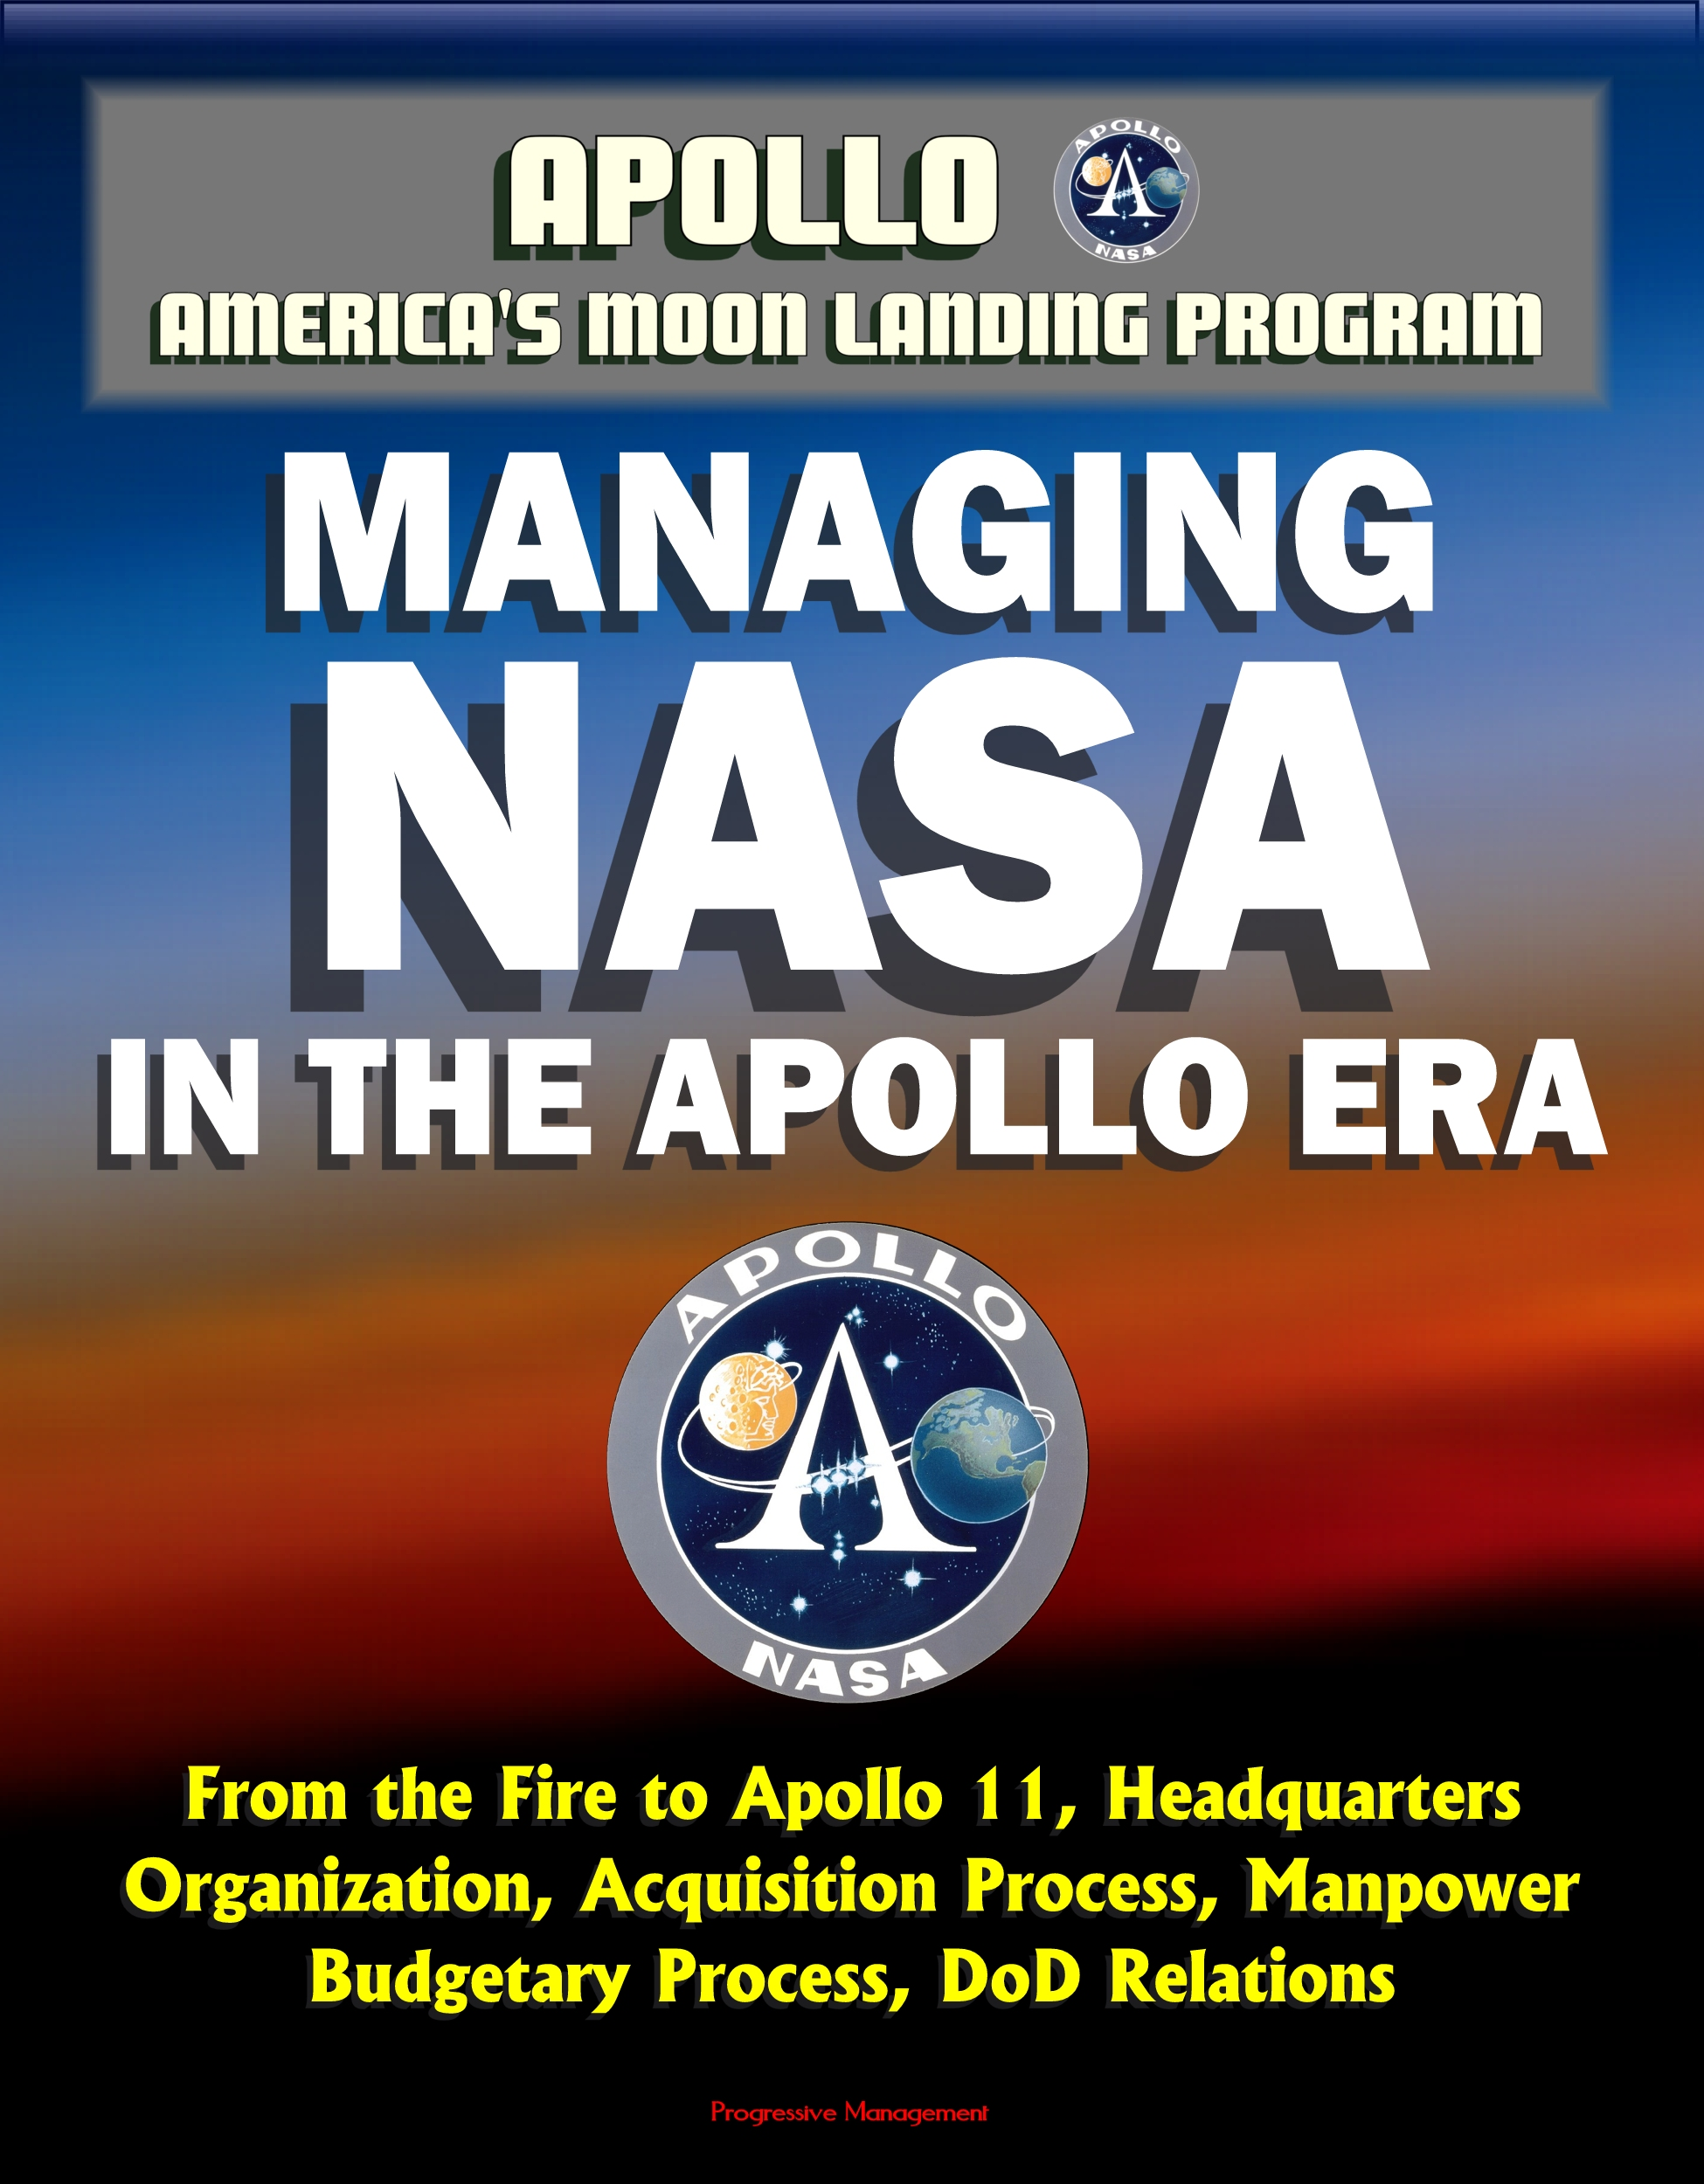 an analysis of the apollo program Apollo 8, the second manned spaceflight mission in an analysis of the apollo program the united states apollo space program, was launched on december 21, 1968, and the lunar module (or lm), the famed eagle of the the creative writing letting go apollo program, was a critical analysis of marxs german ideology designed, assembled.